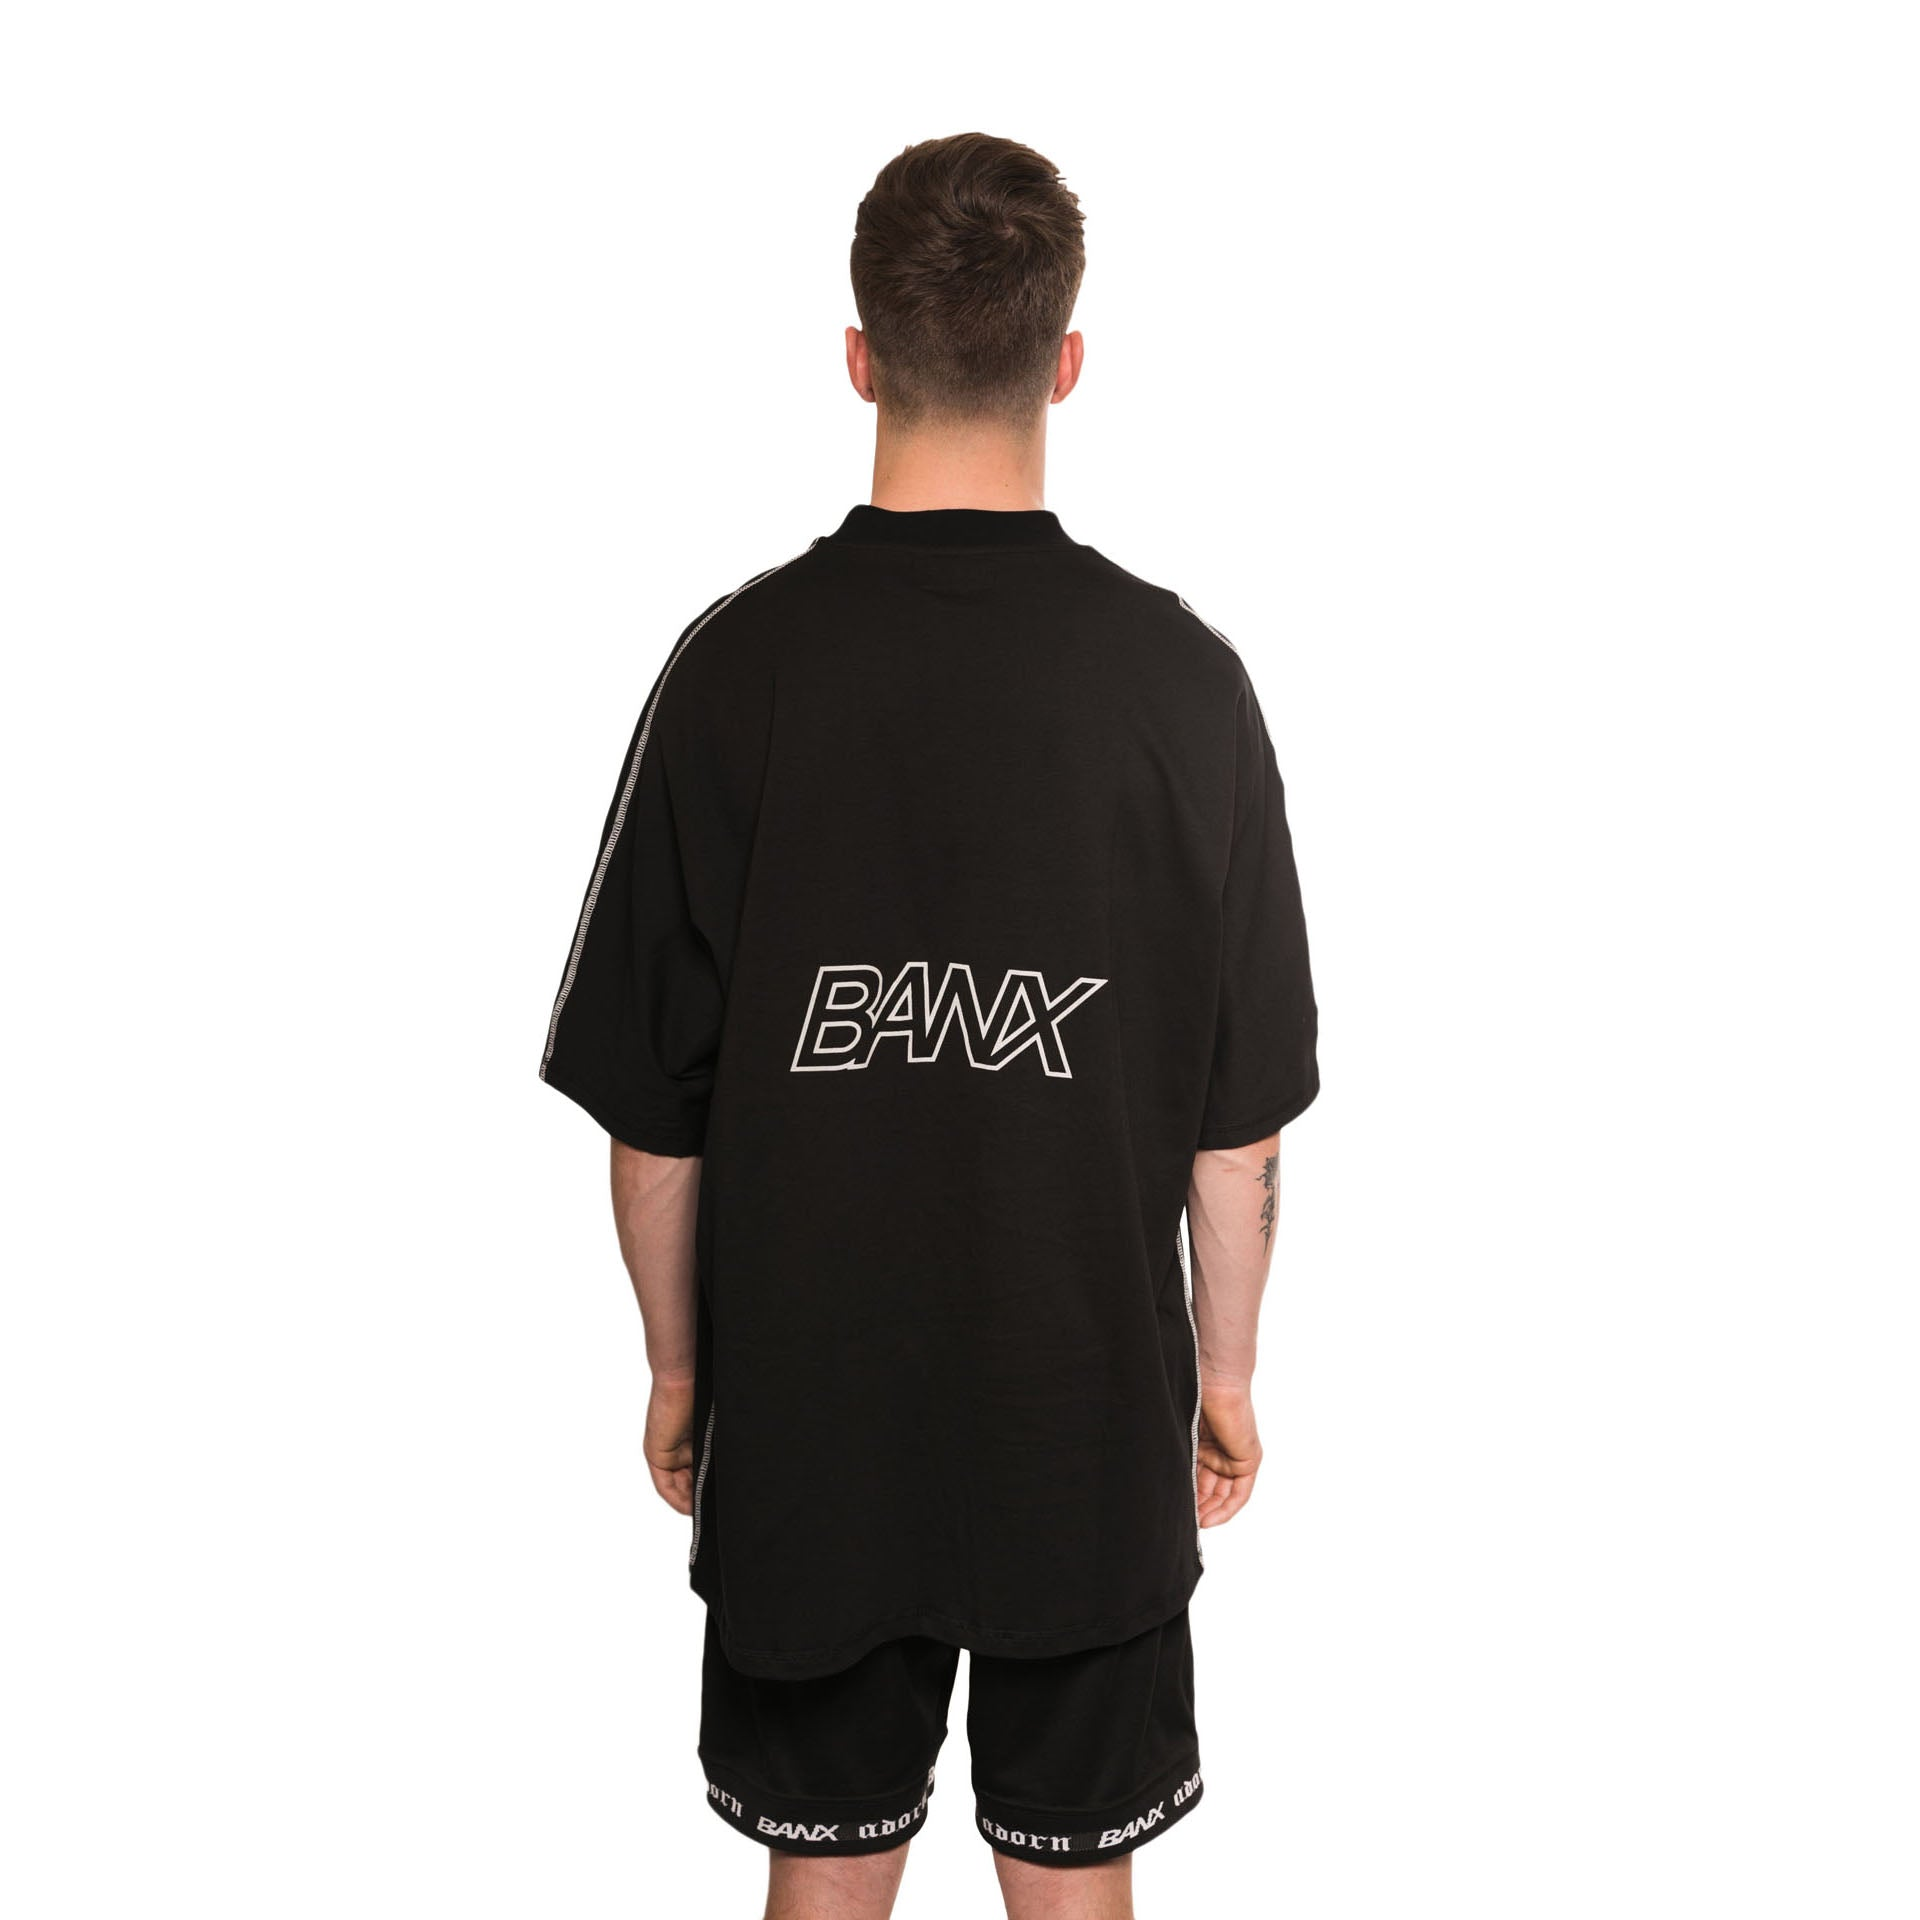 NV-3M Oversized Shirt